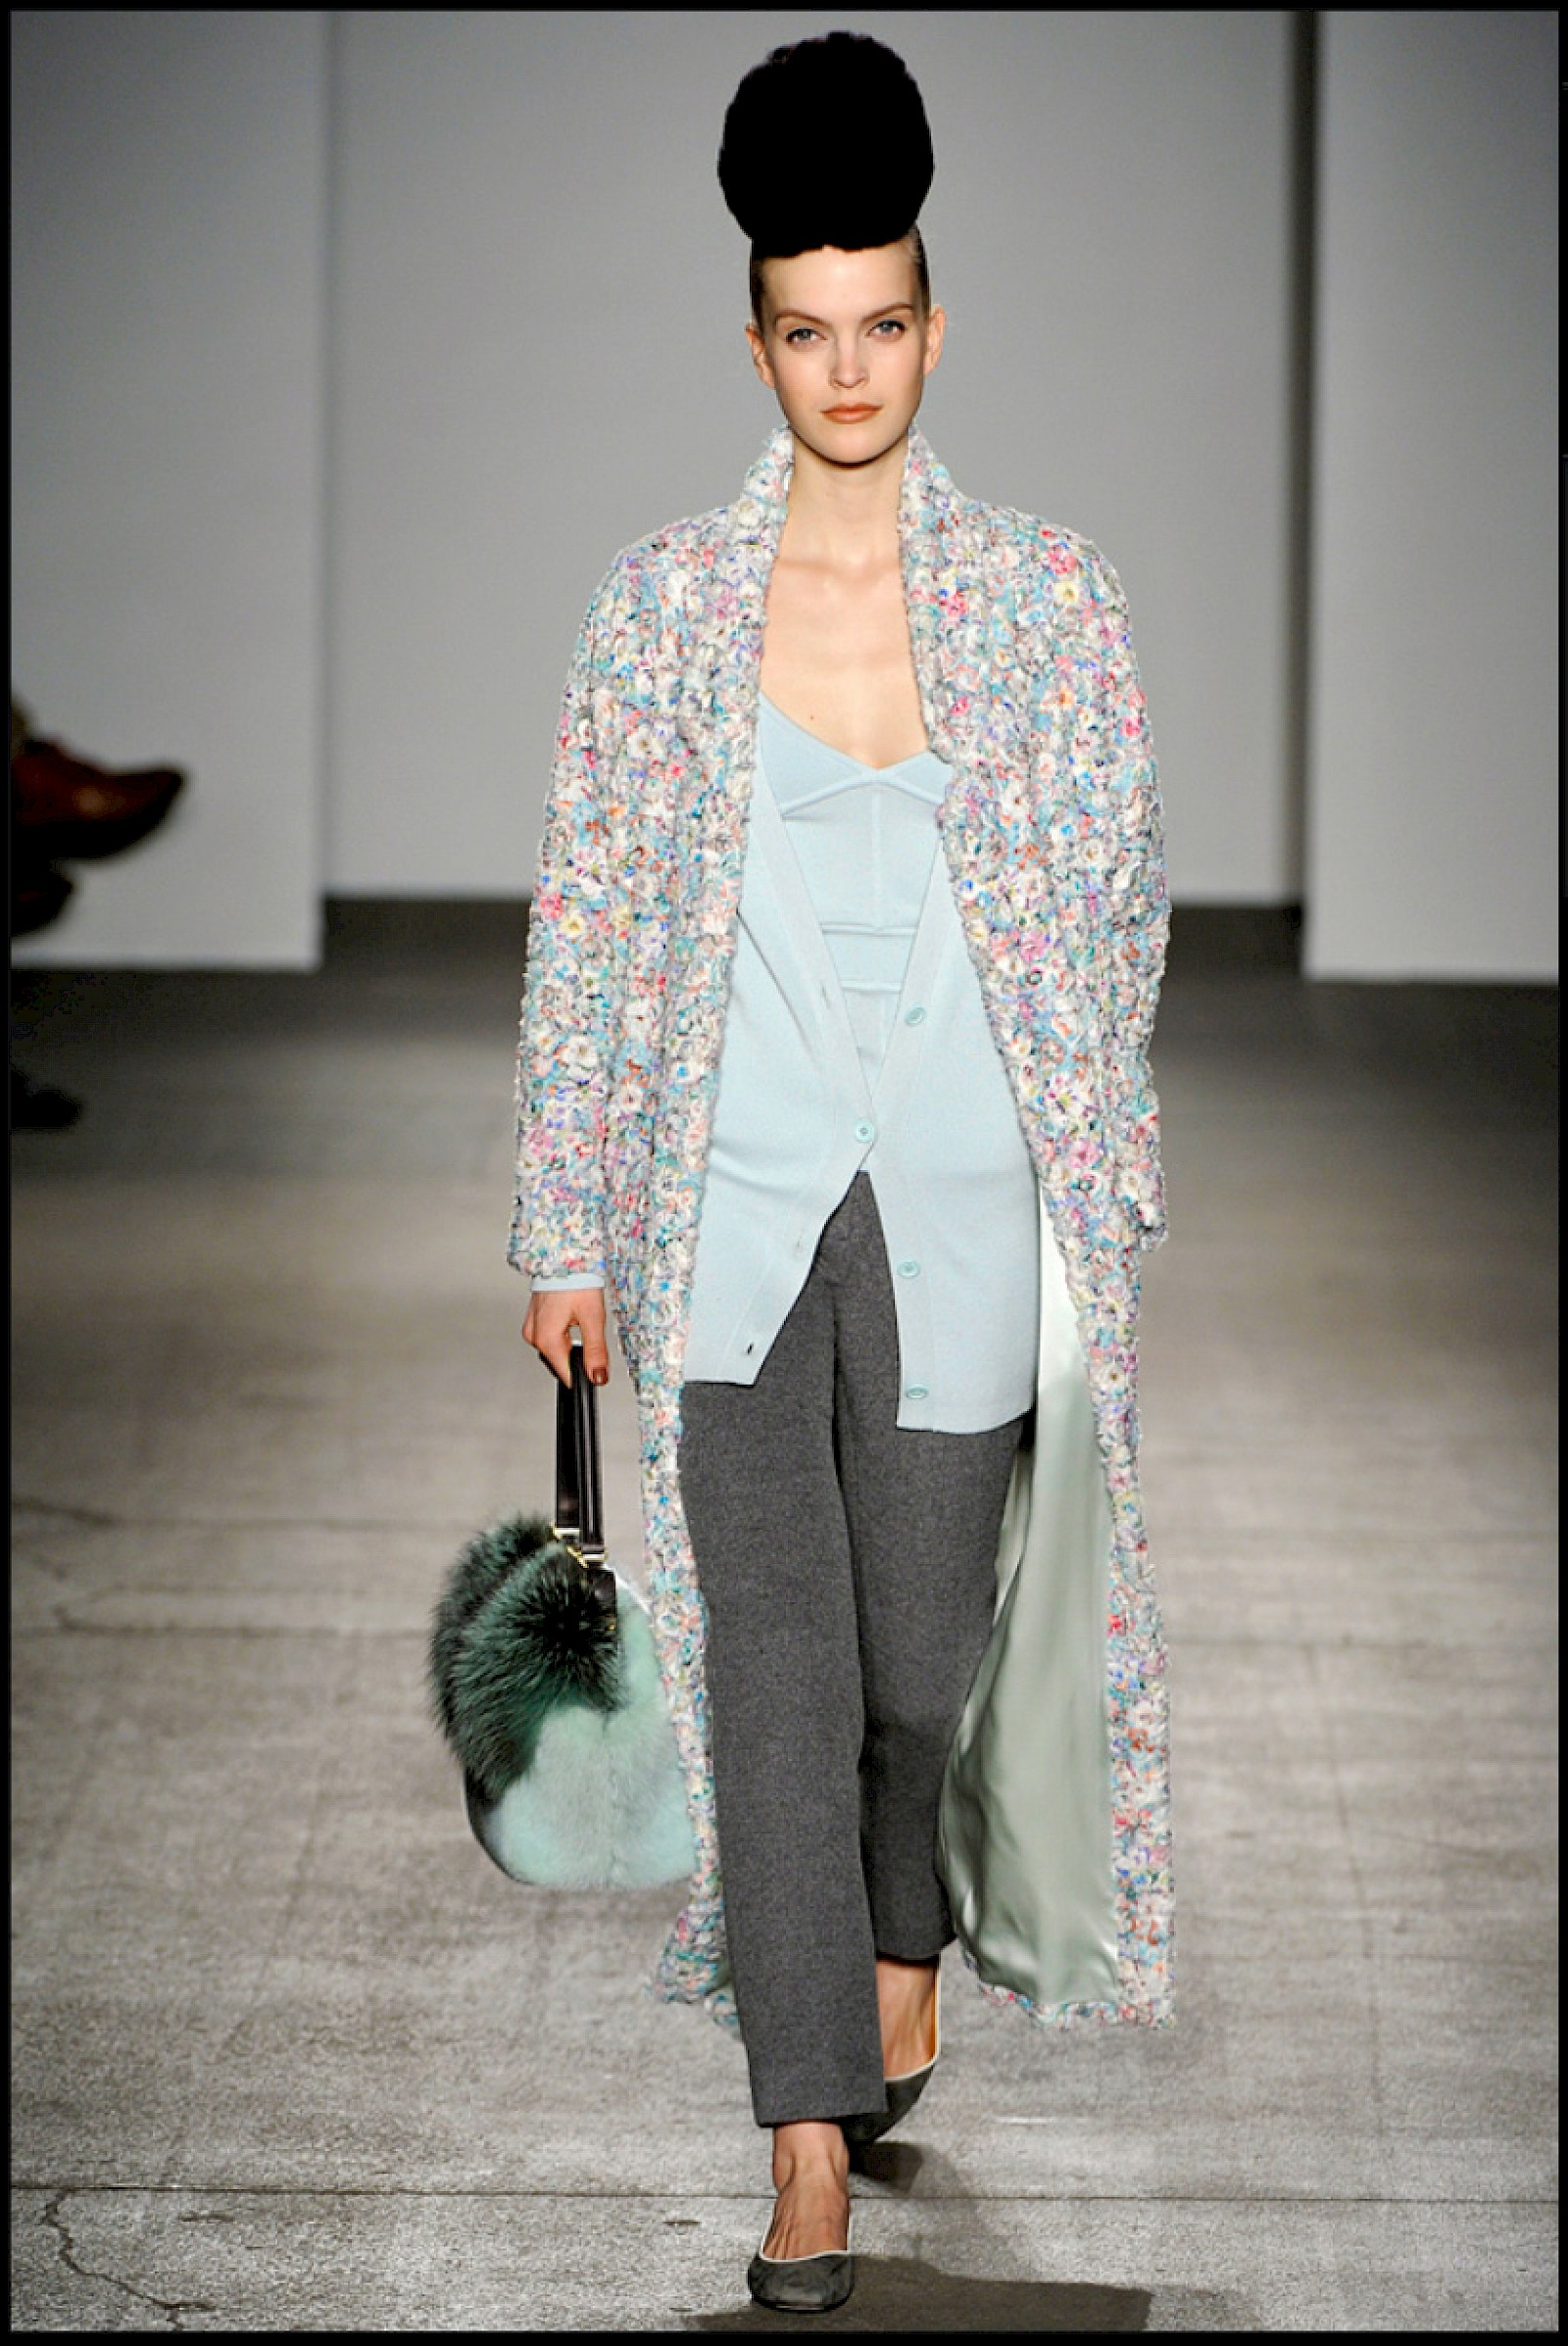 Image - Isaac Mizrahi, Ready-to-wear FALL 2011